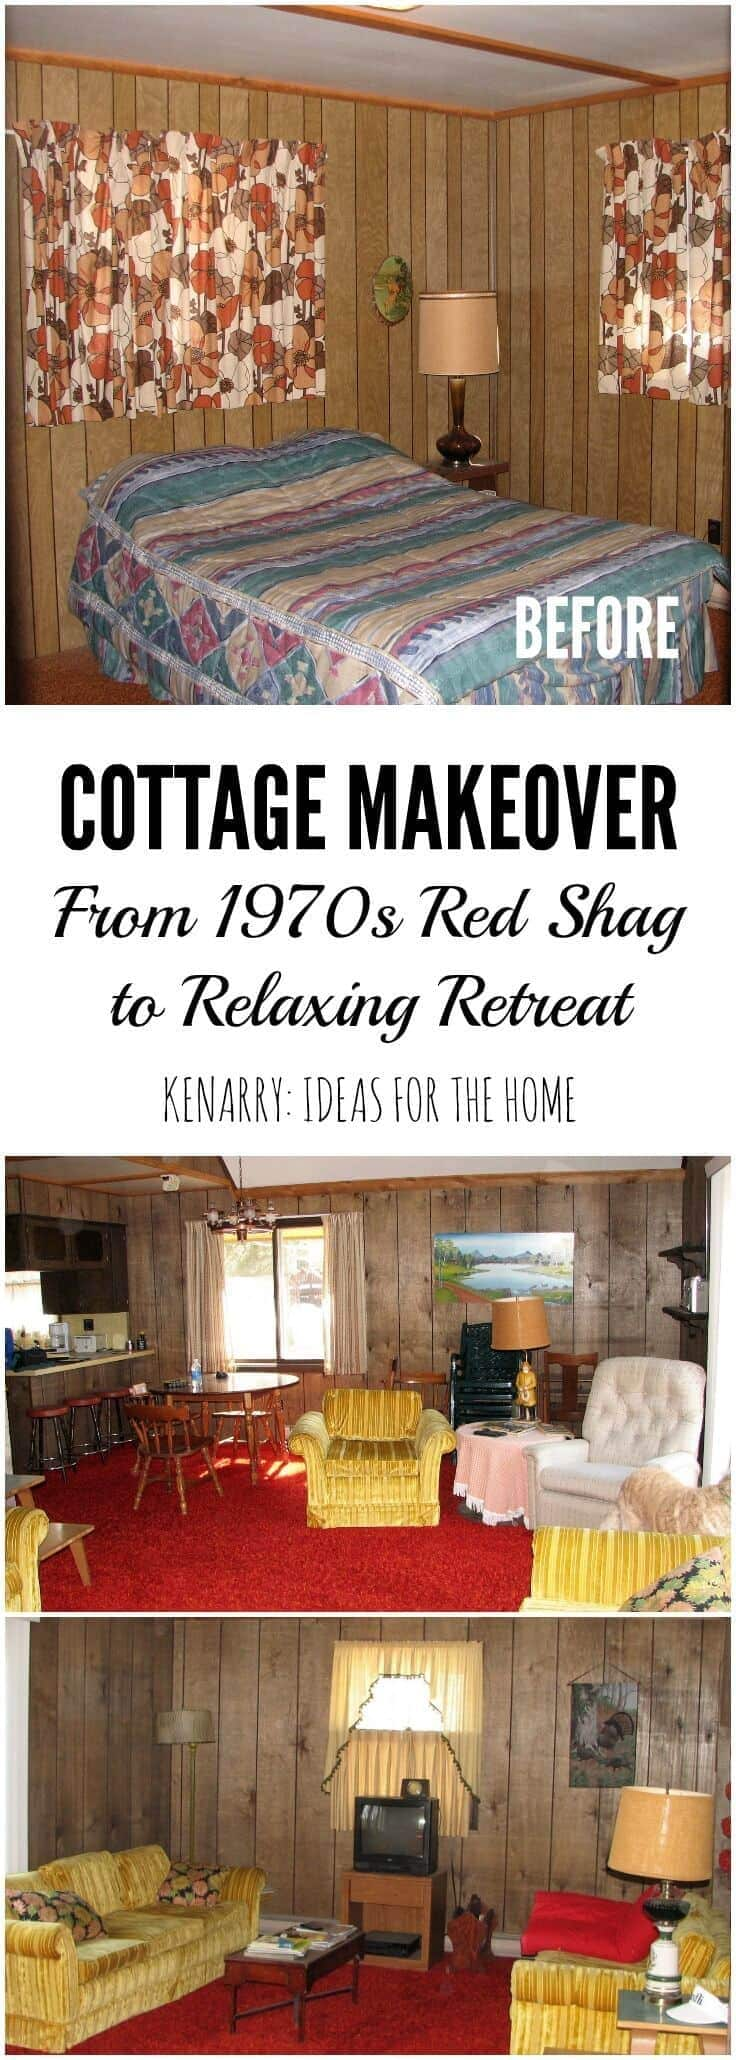 Wow! This little cabin was in desperate need of an extreme cottage makeover! I love seeing all the before/after photos as well as a video tour showing how this little home on a river has been transformed.